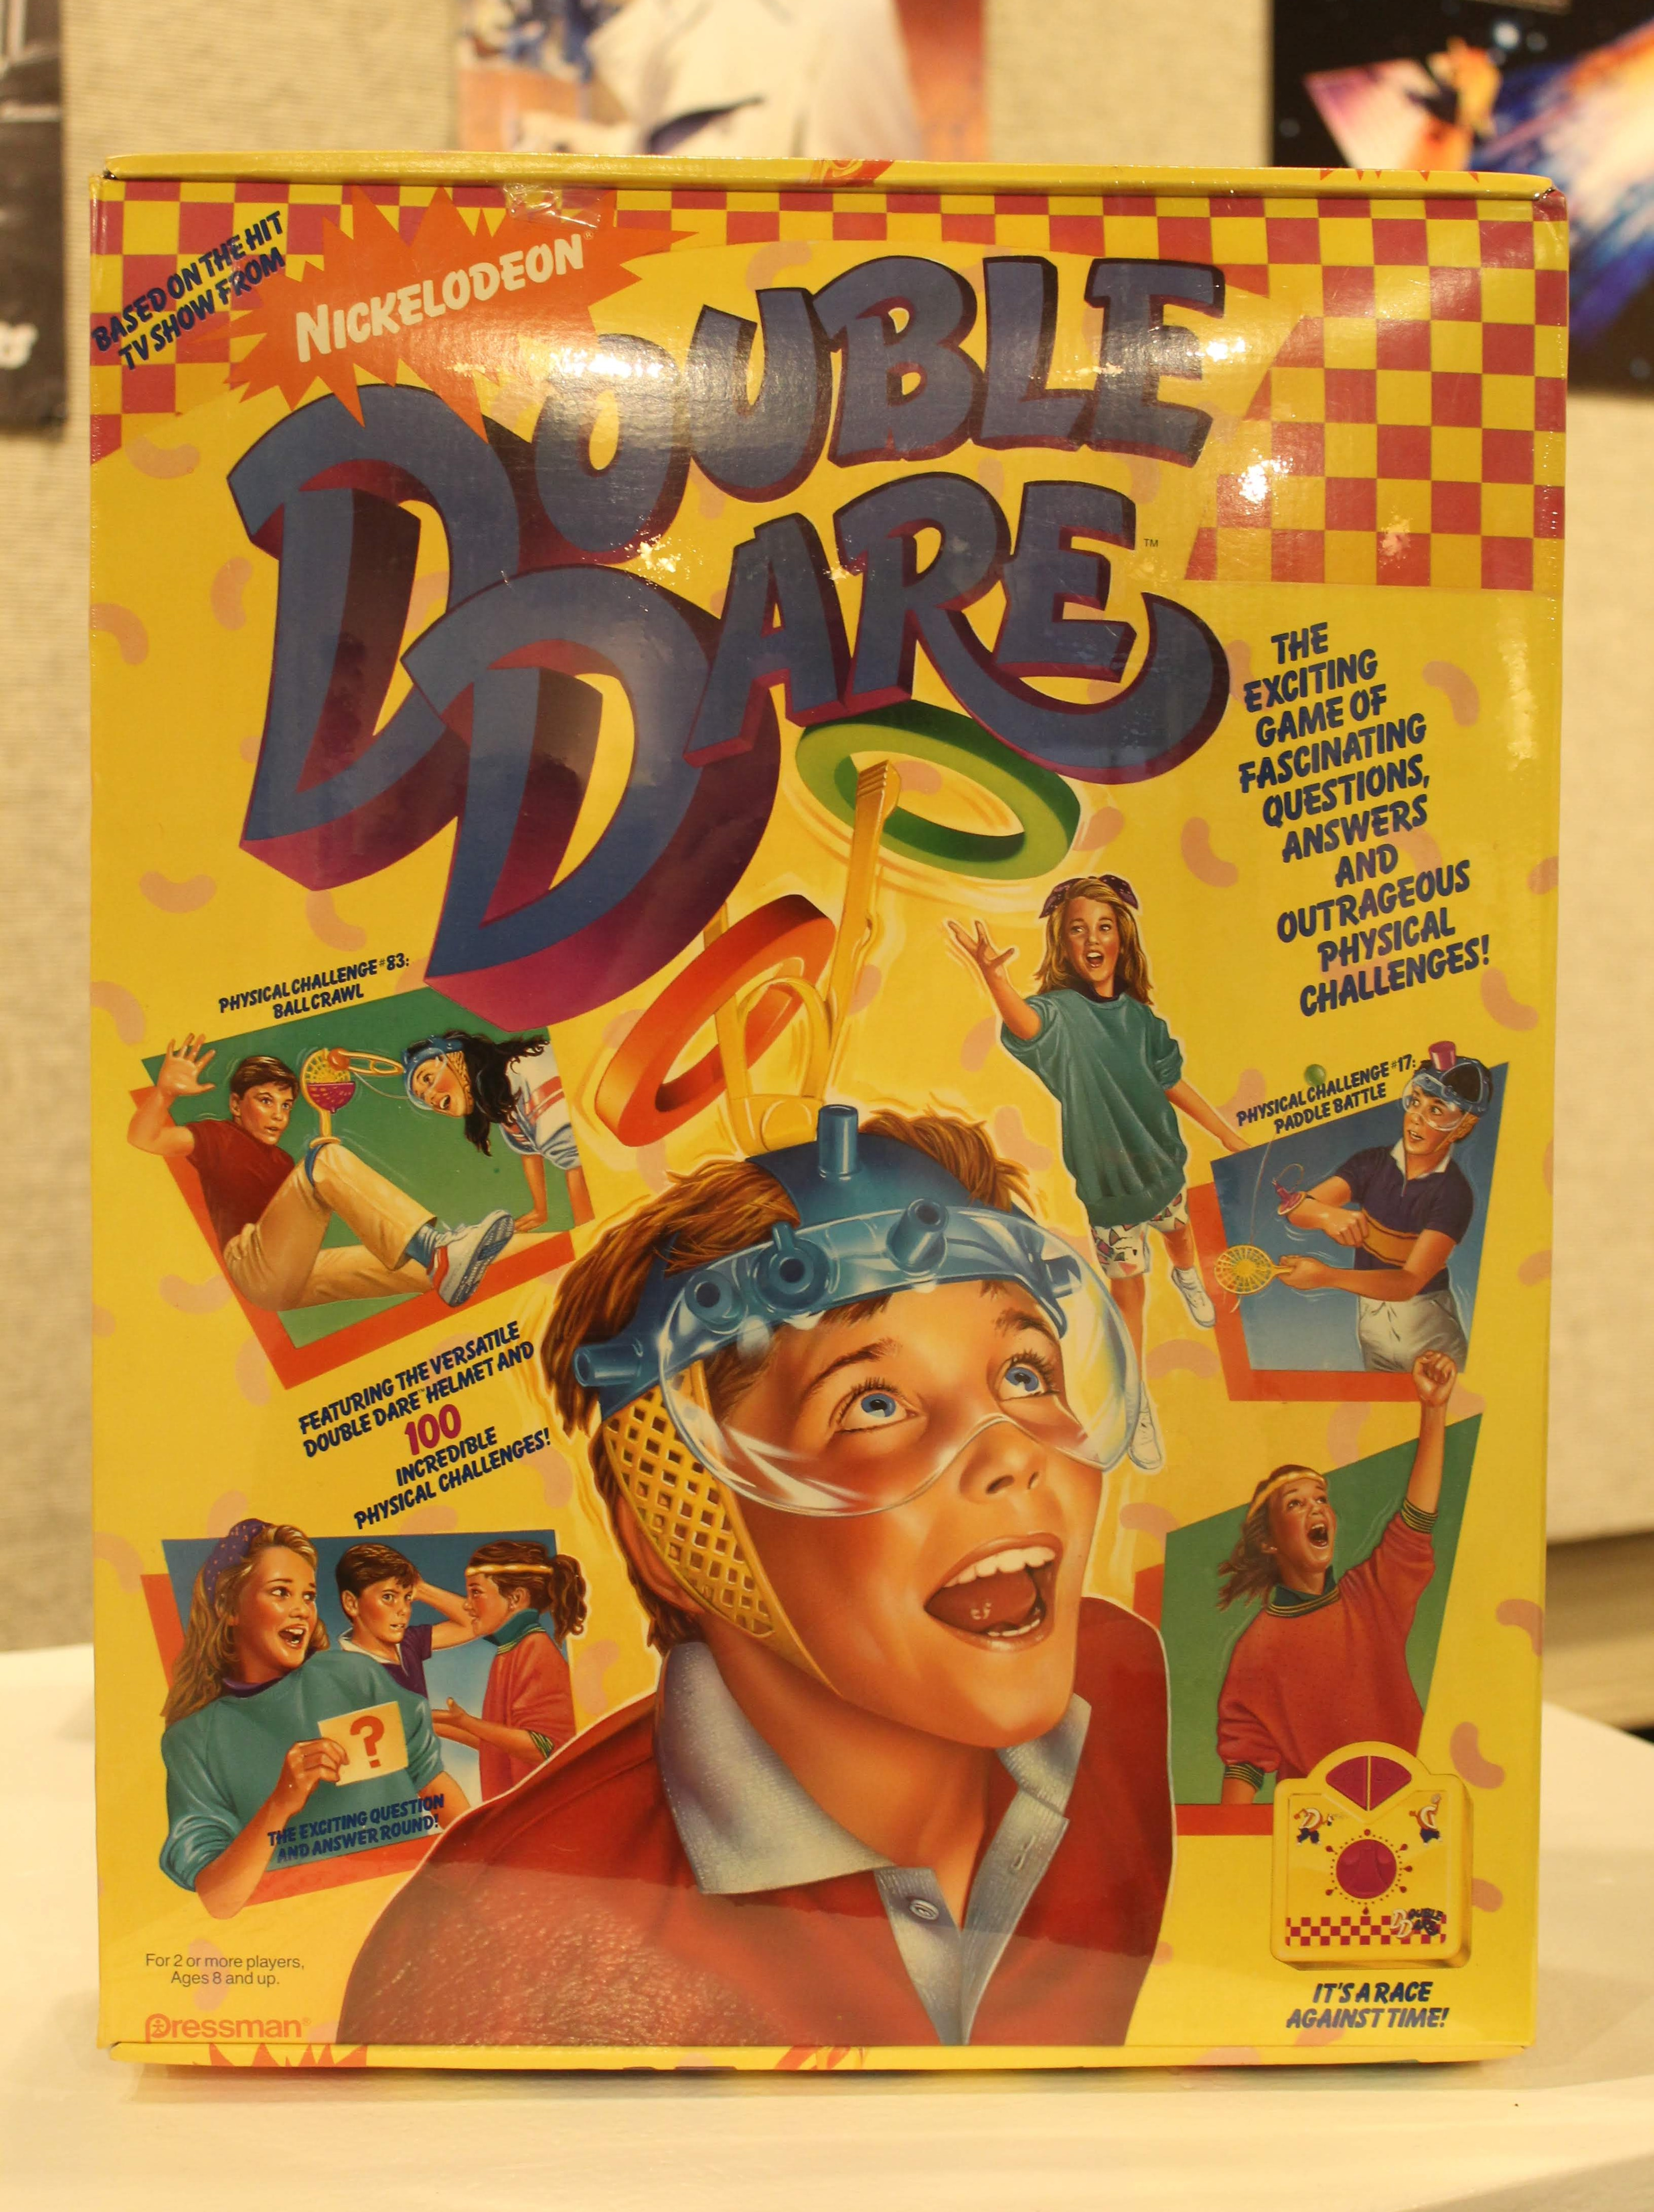 Image of Double Dare Board Game artwork